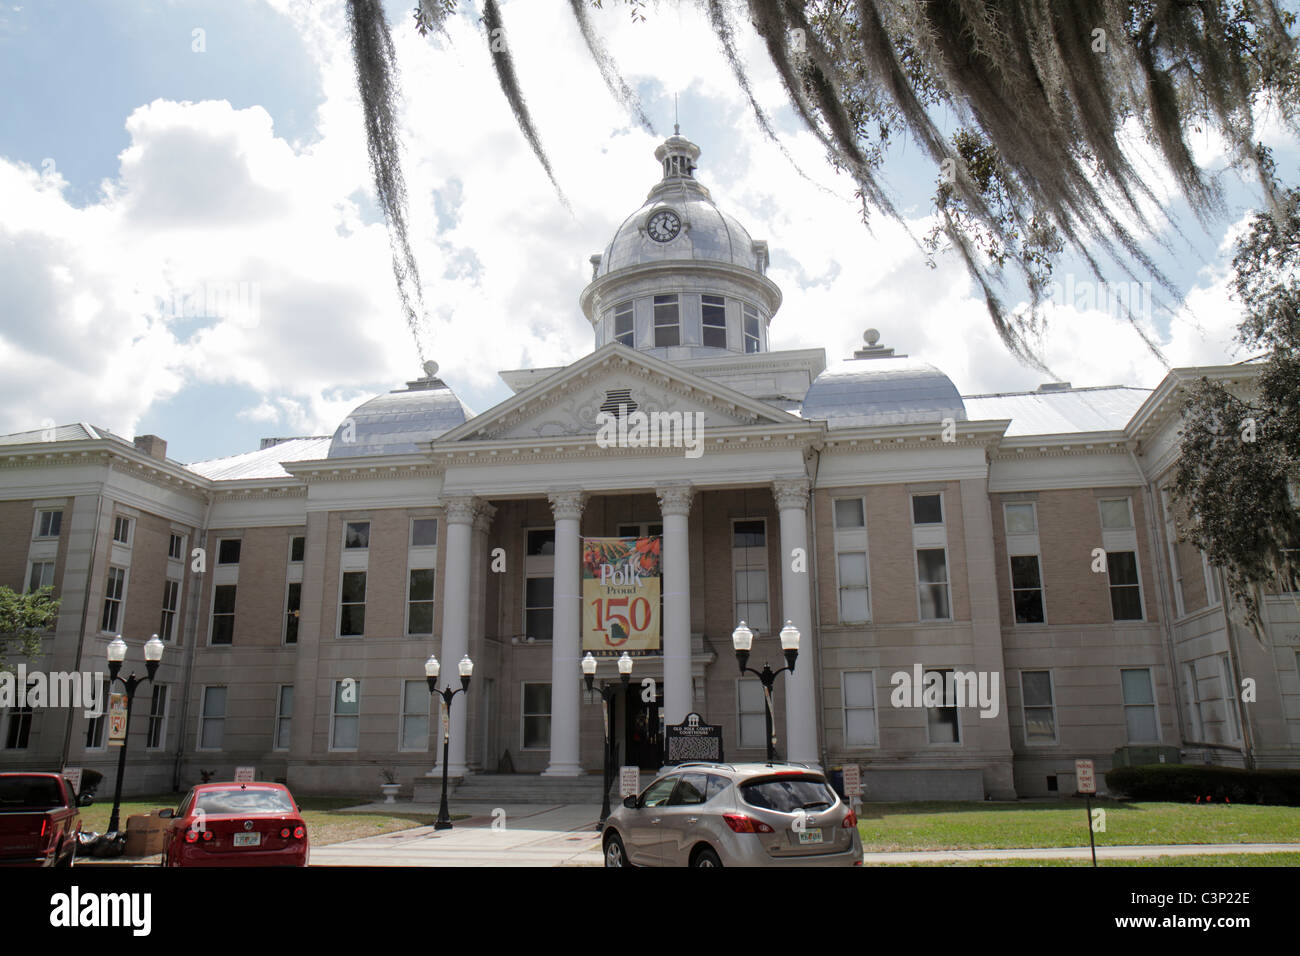 Polk County Stock Photos & Polk County Stock Images - Alamy